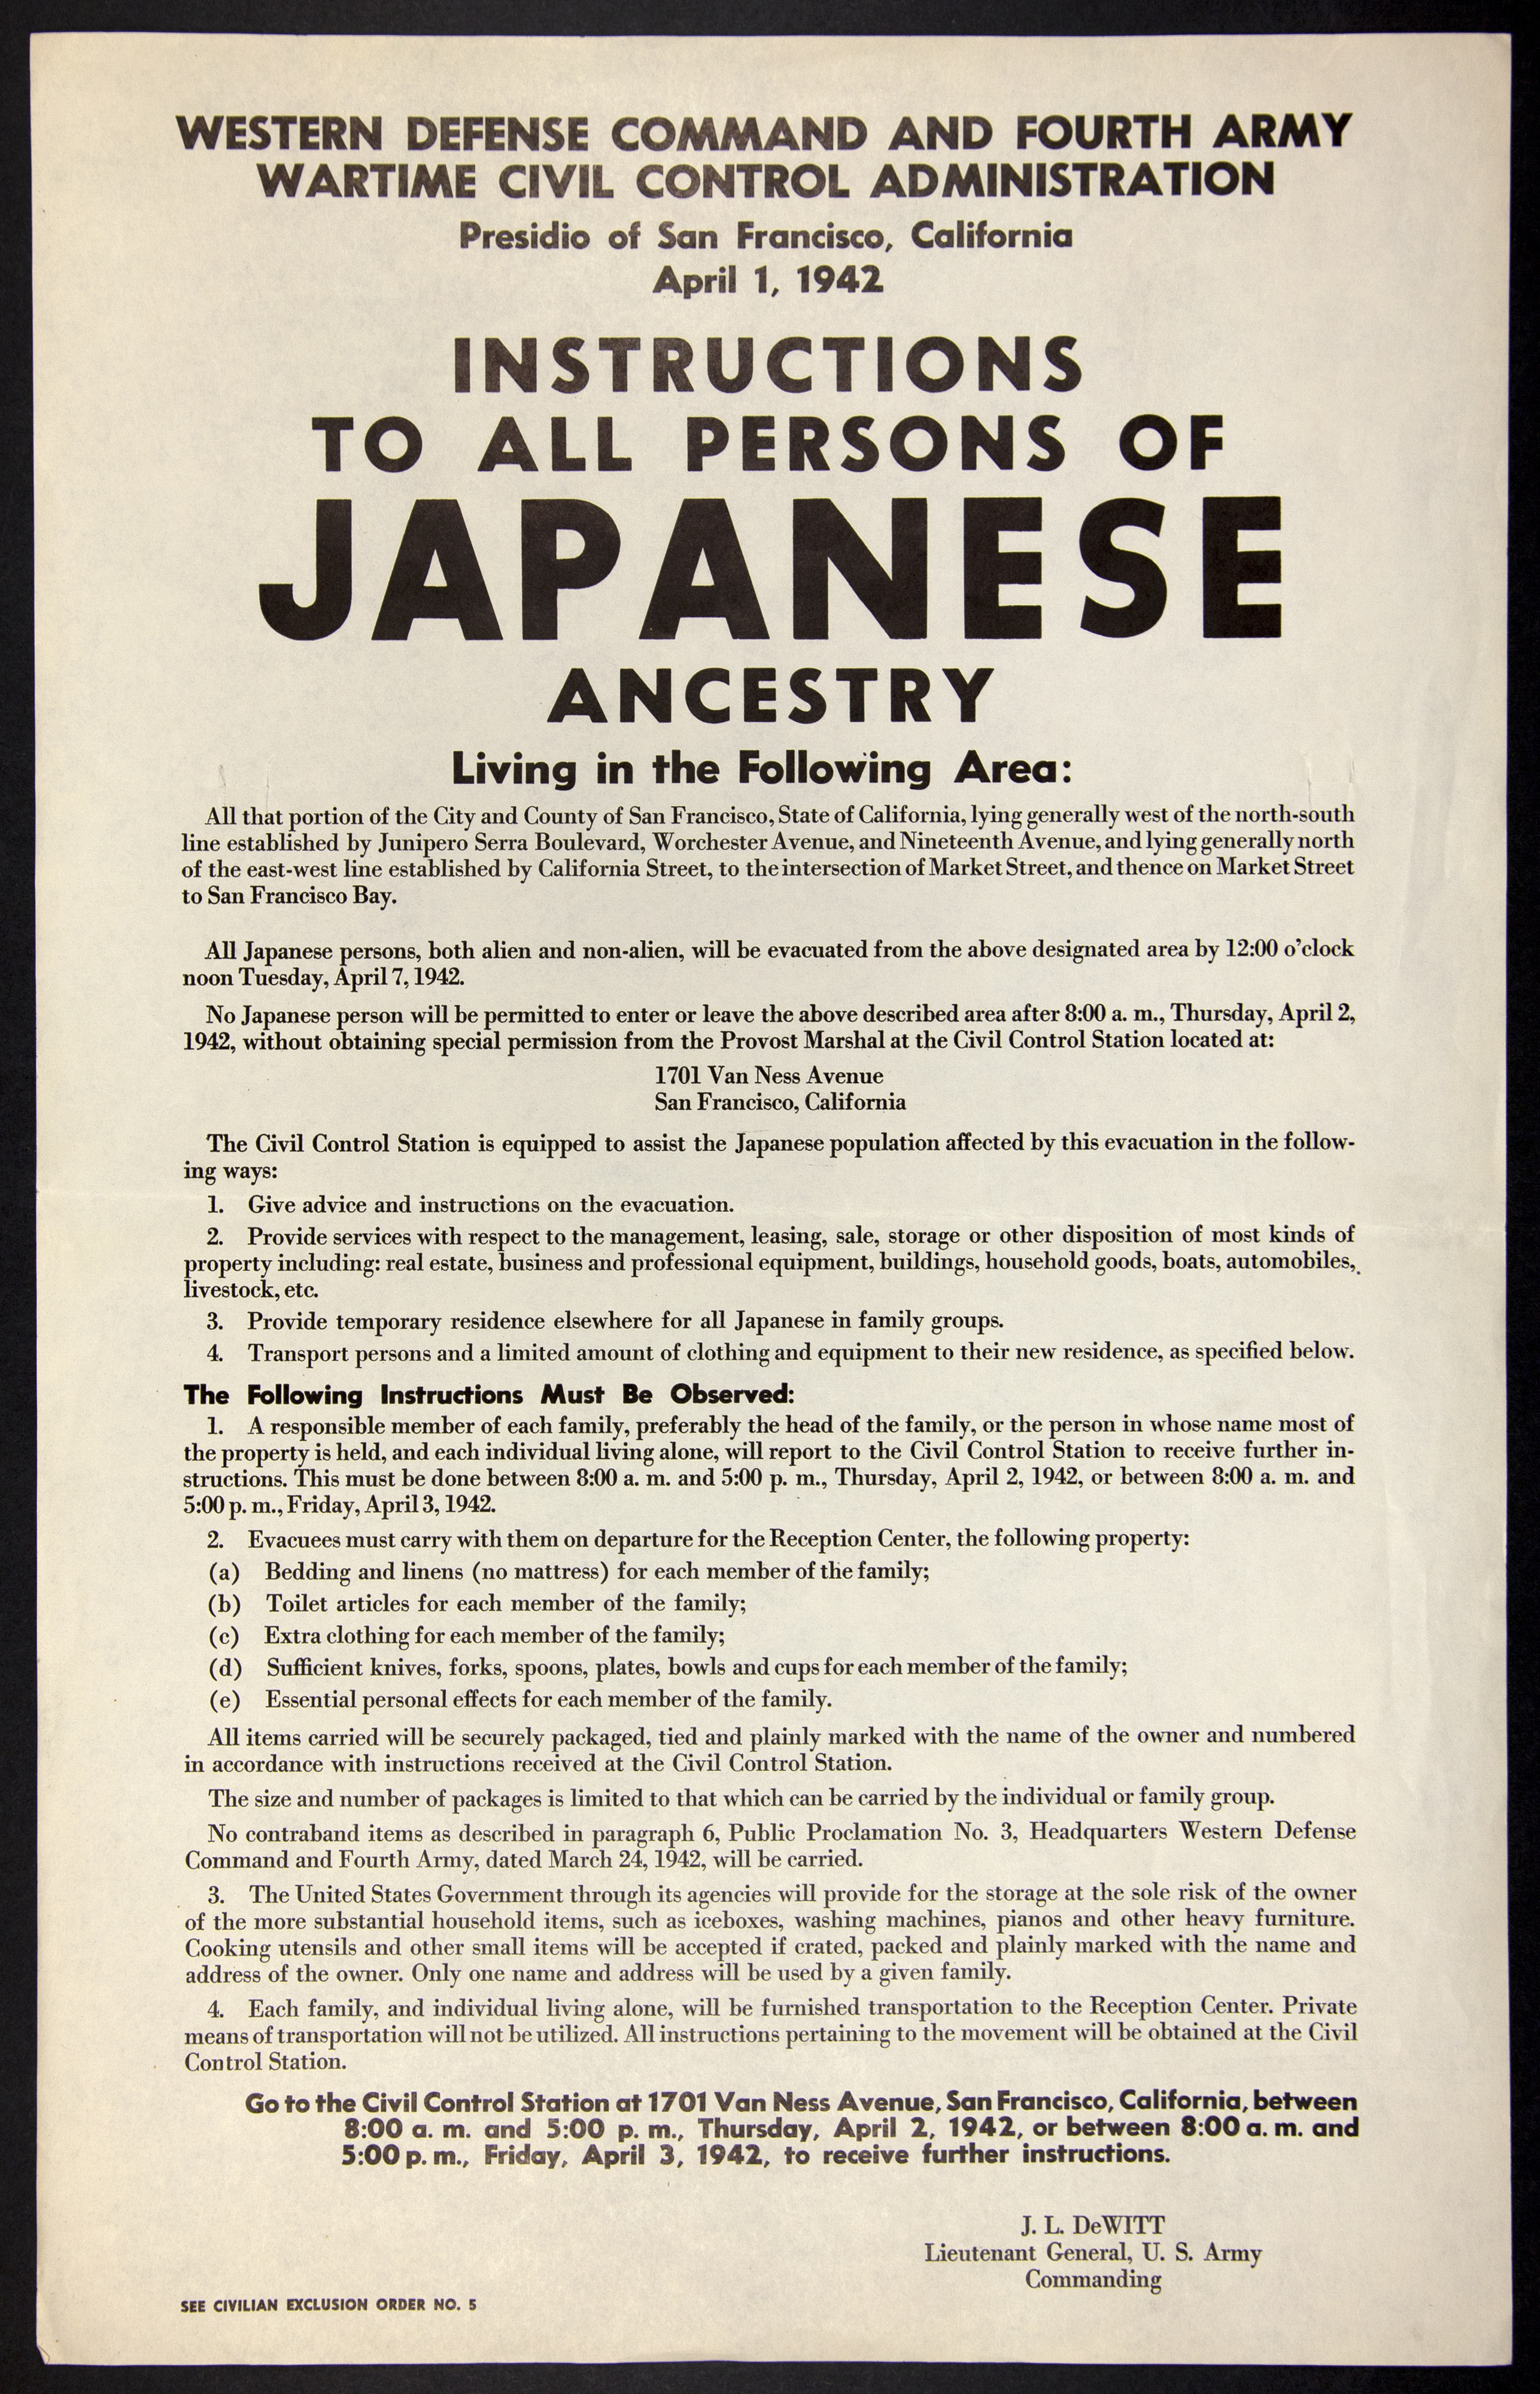 Instructions For All Persons Of Japanese Ancestry From The